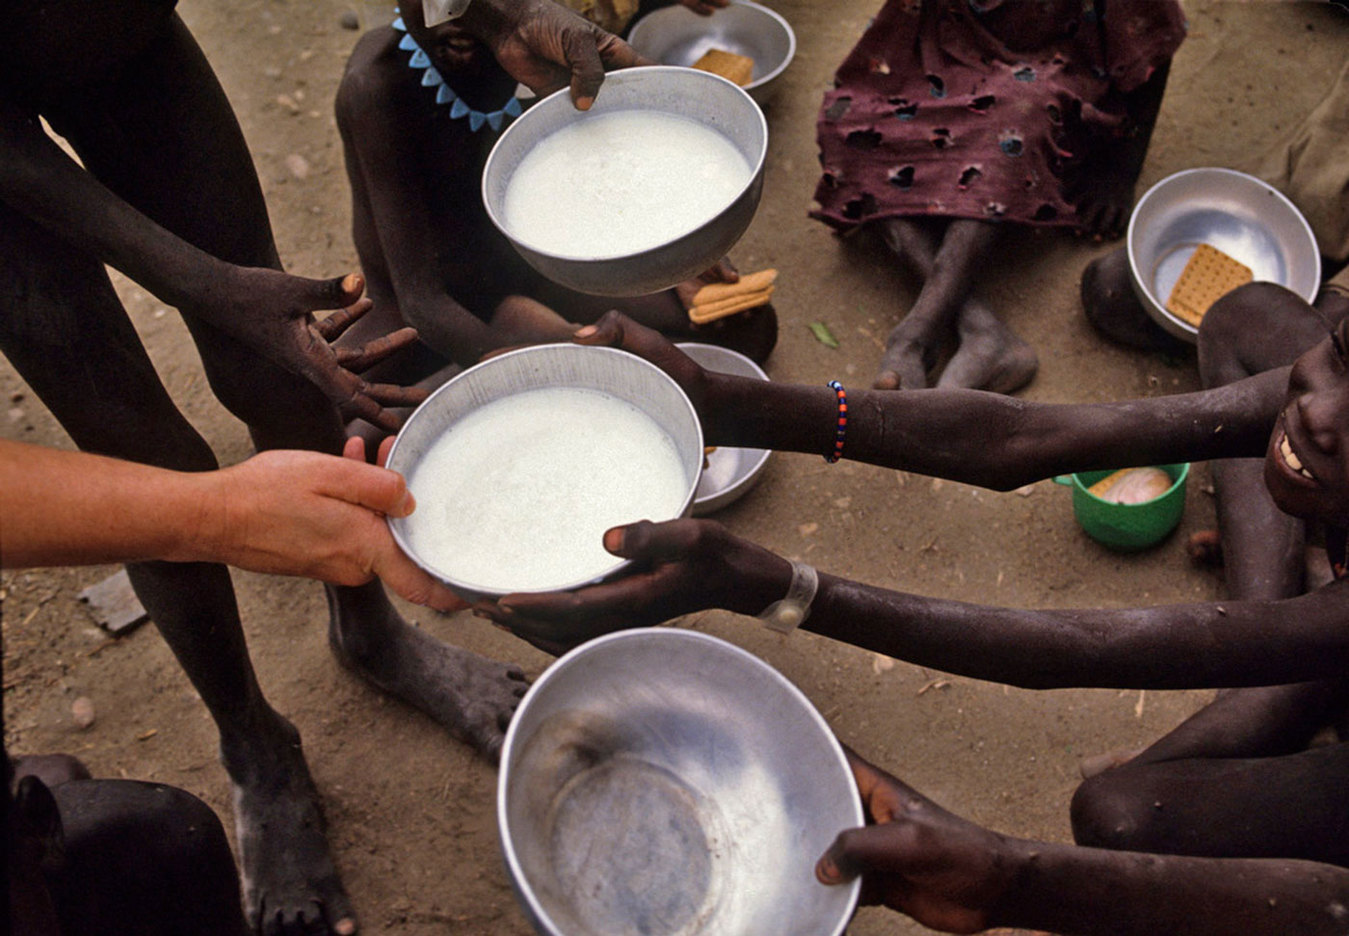 Distributing milk to children in a food distribution center in Southern Sudan : CRISIS : Viviane Moos |  Documentary Photographer